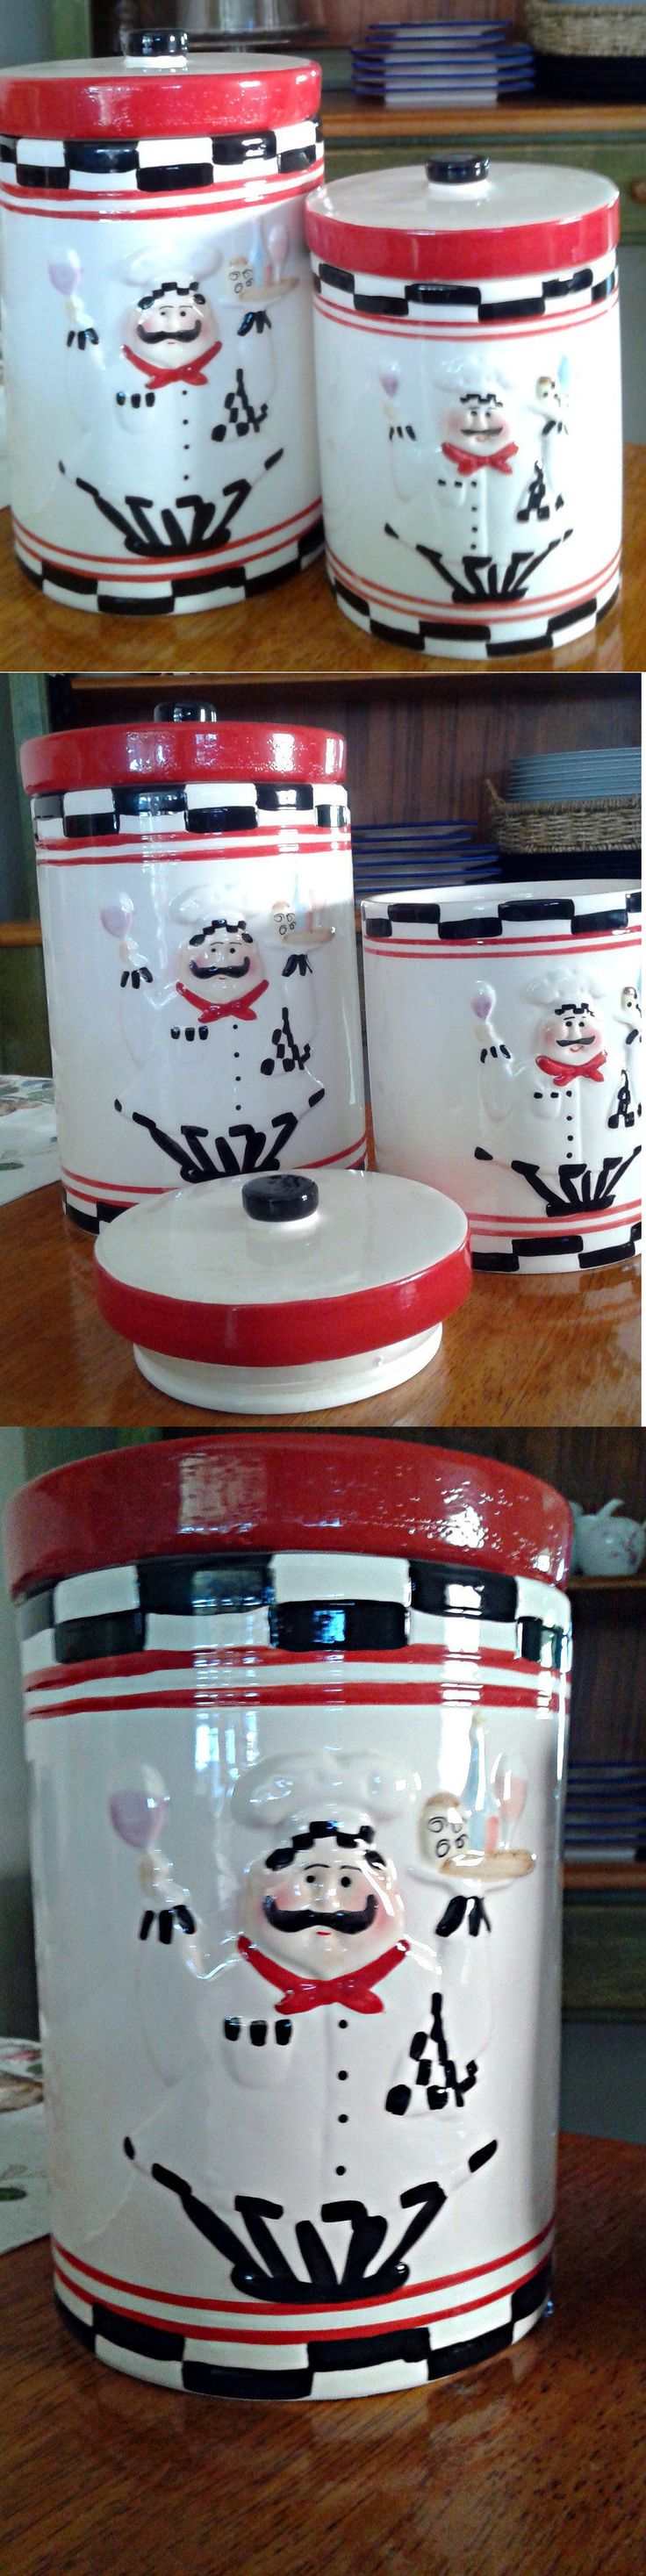 the 25 best kitchen canisters and jars ideas on pinterest canisters and jars 20654 chef canister set of 2 kitchen decoration new buy